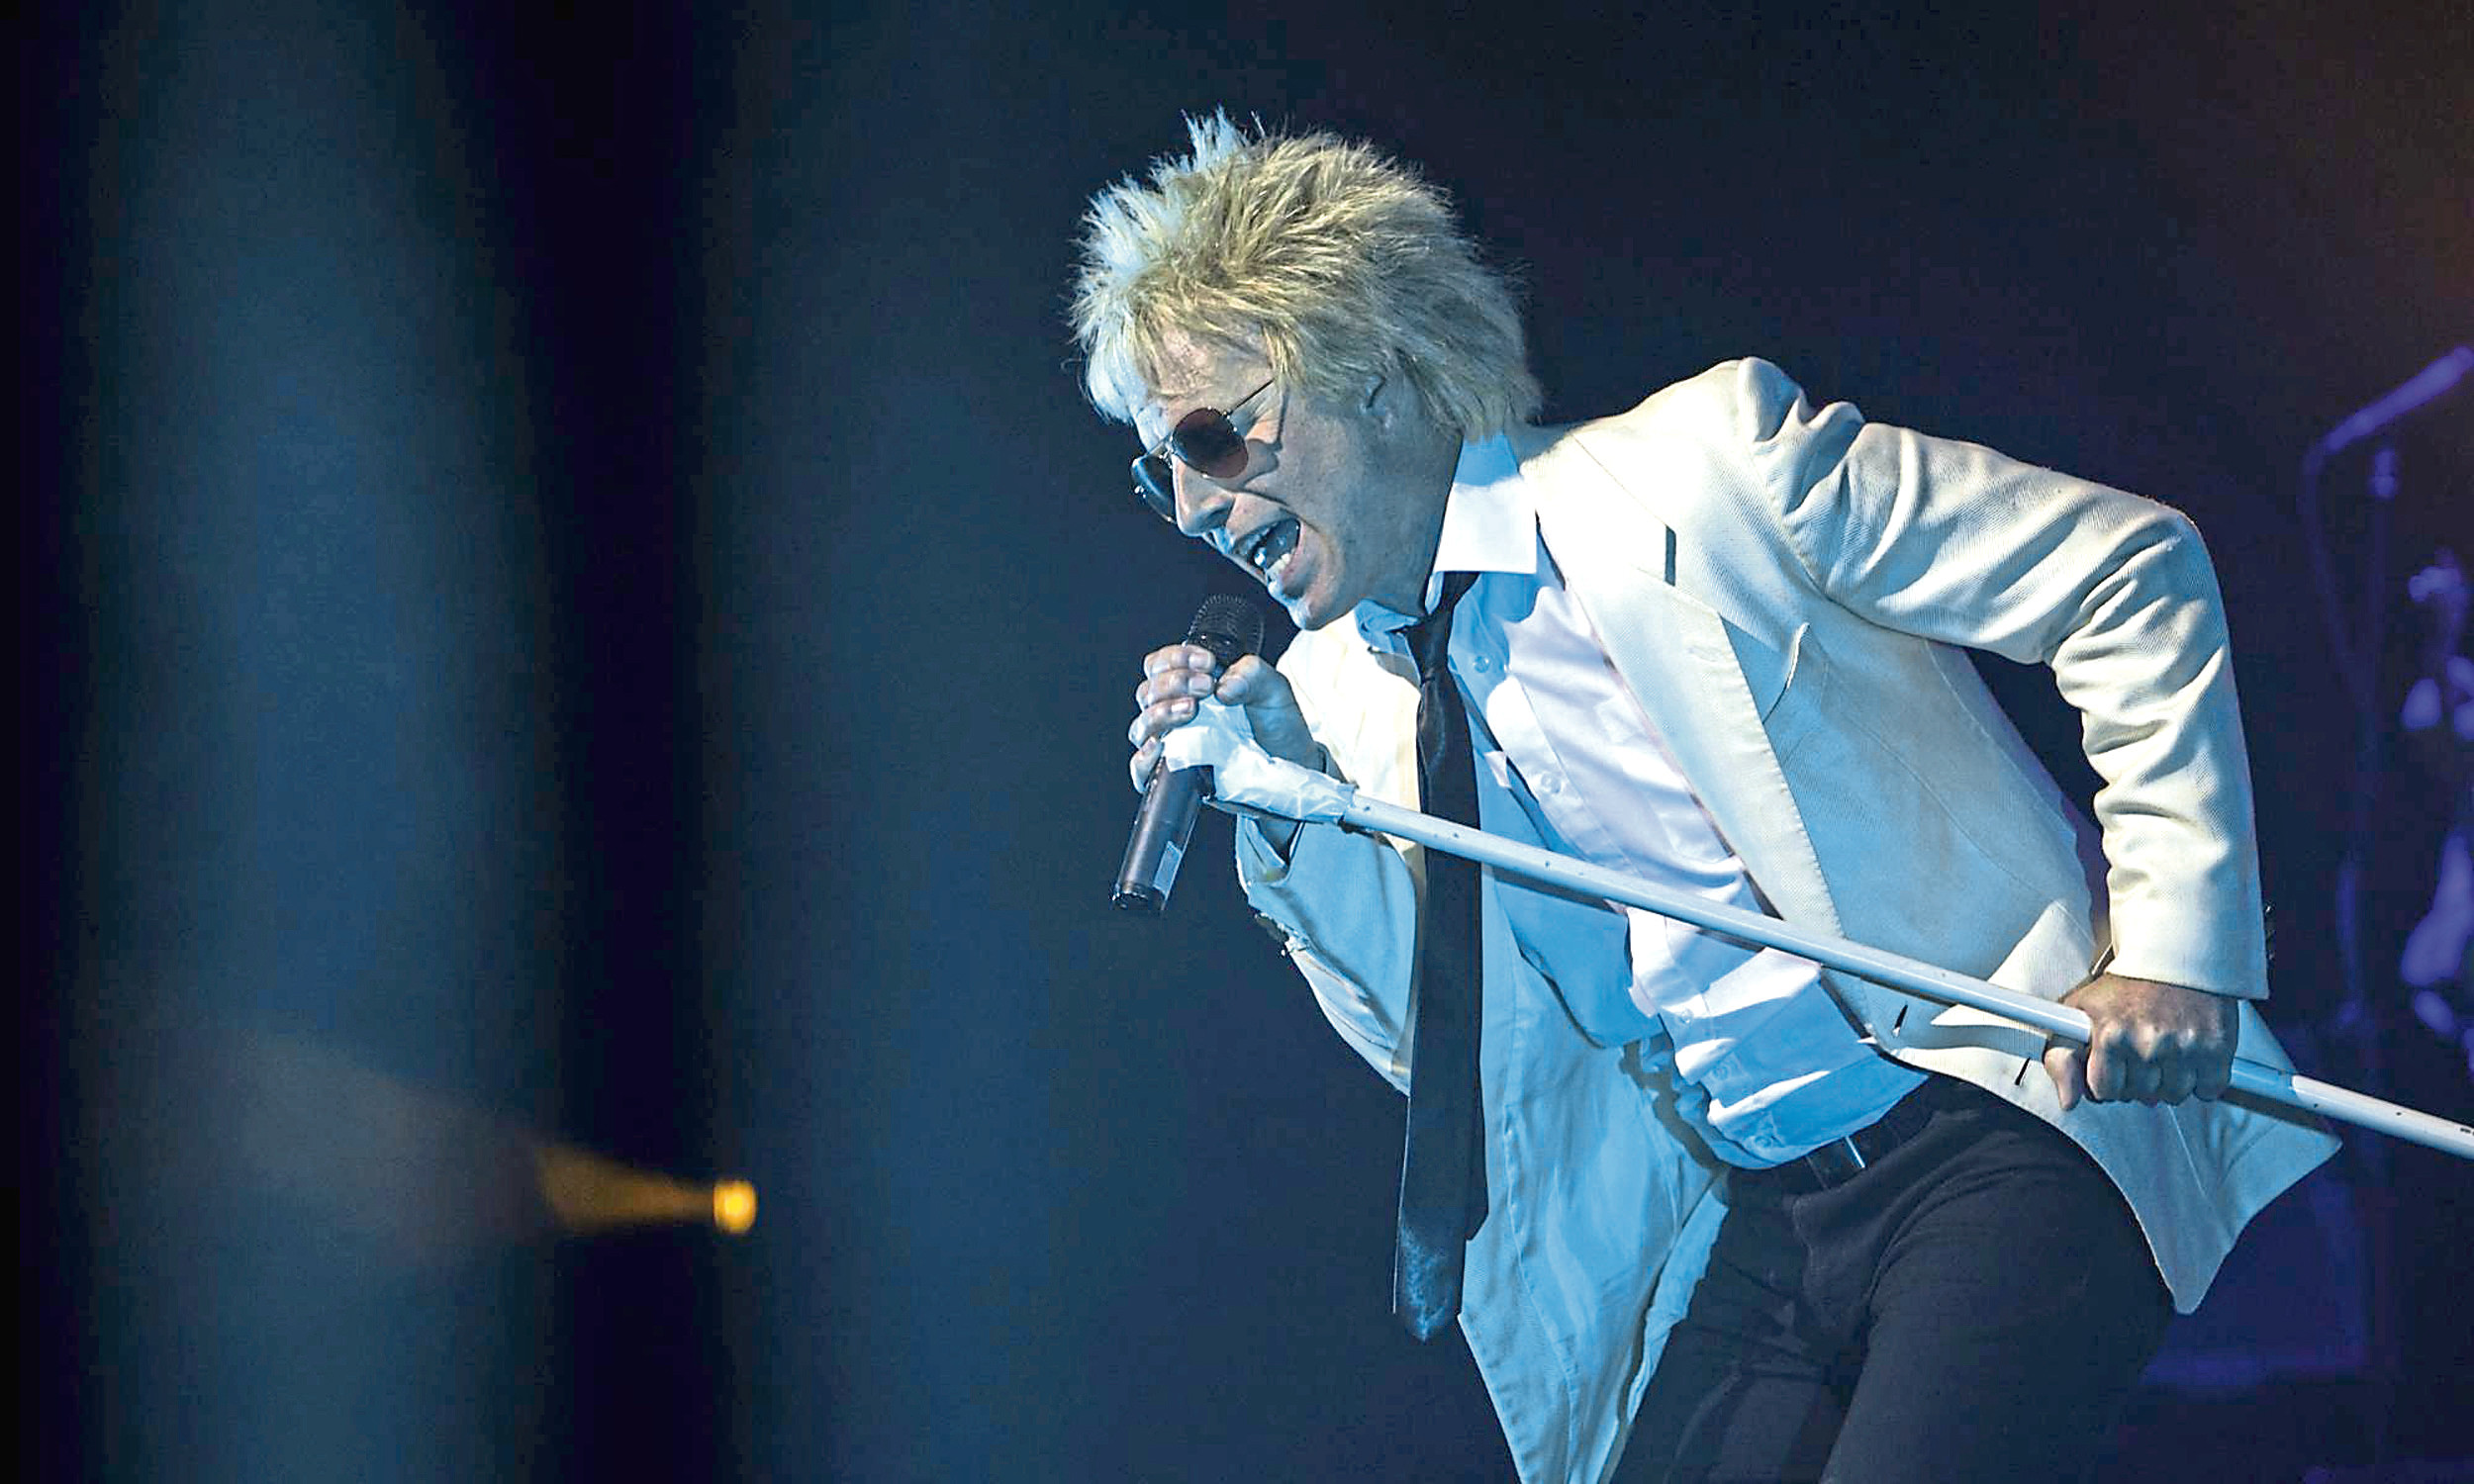 SOME GUYS HAVE ALL THE LUCK THE ROD STEWART STORY